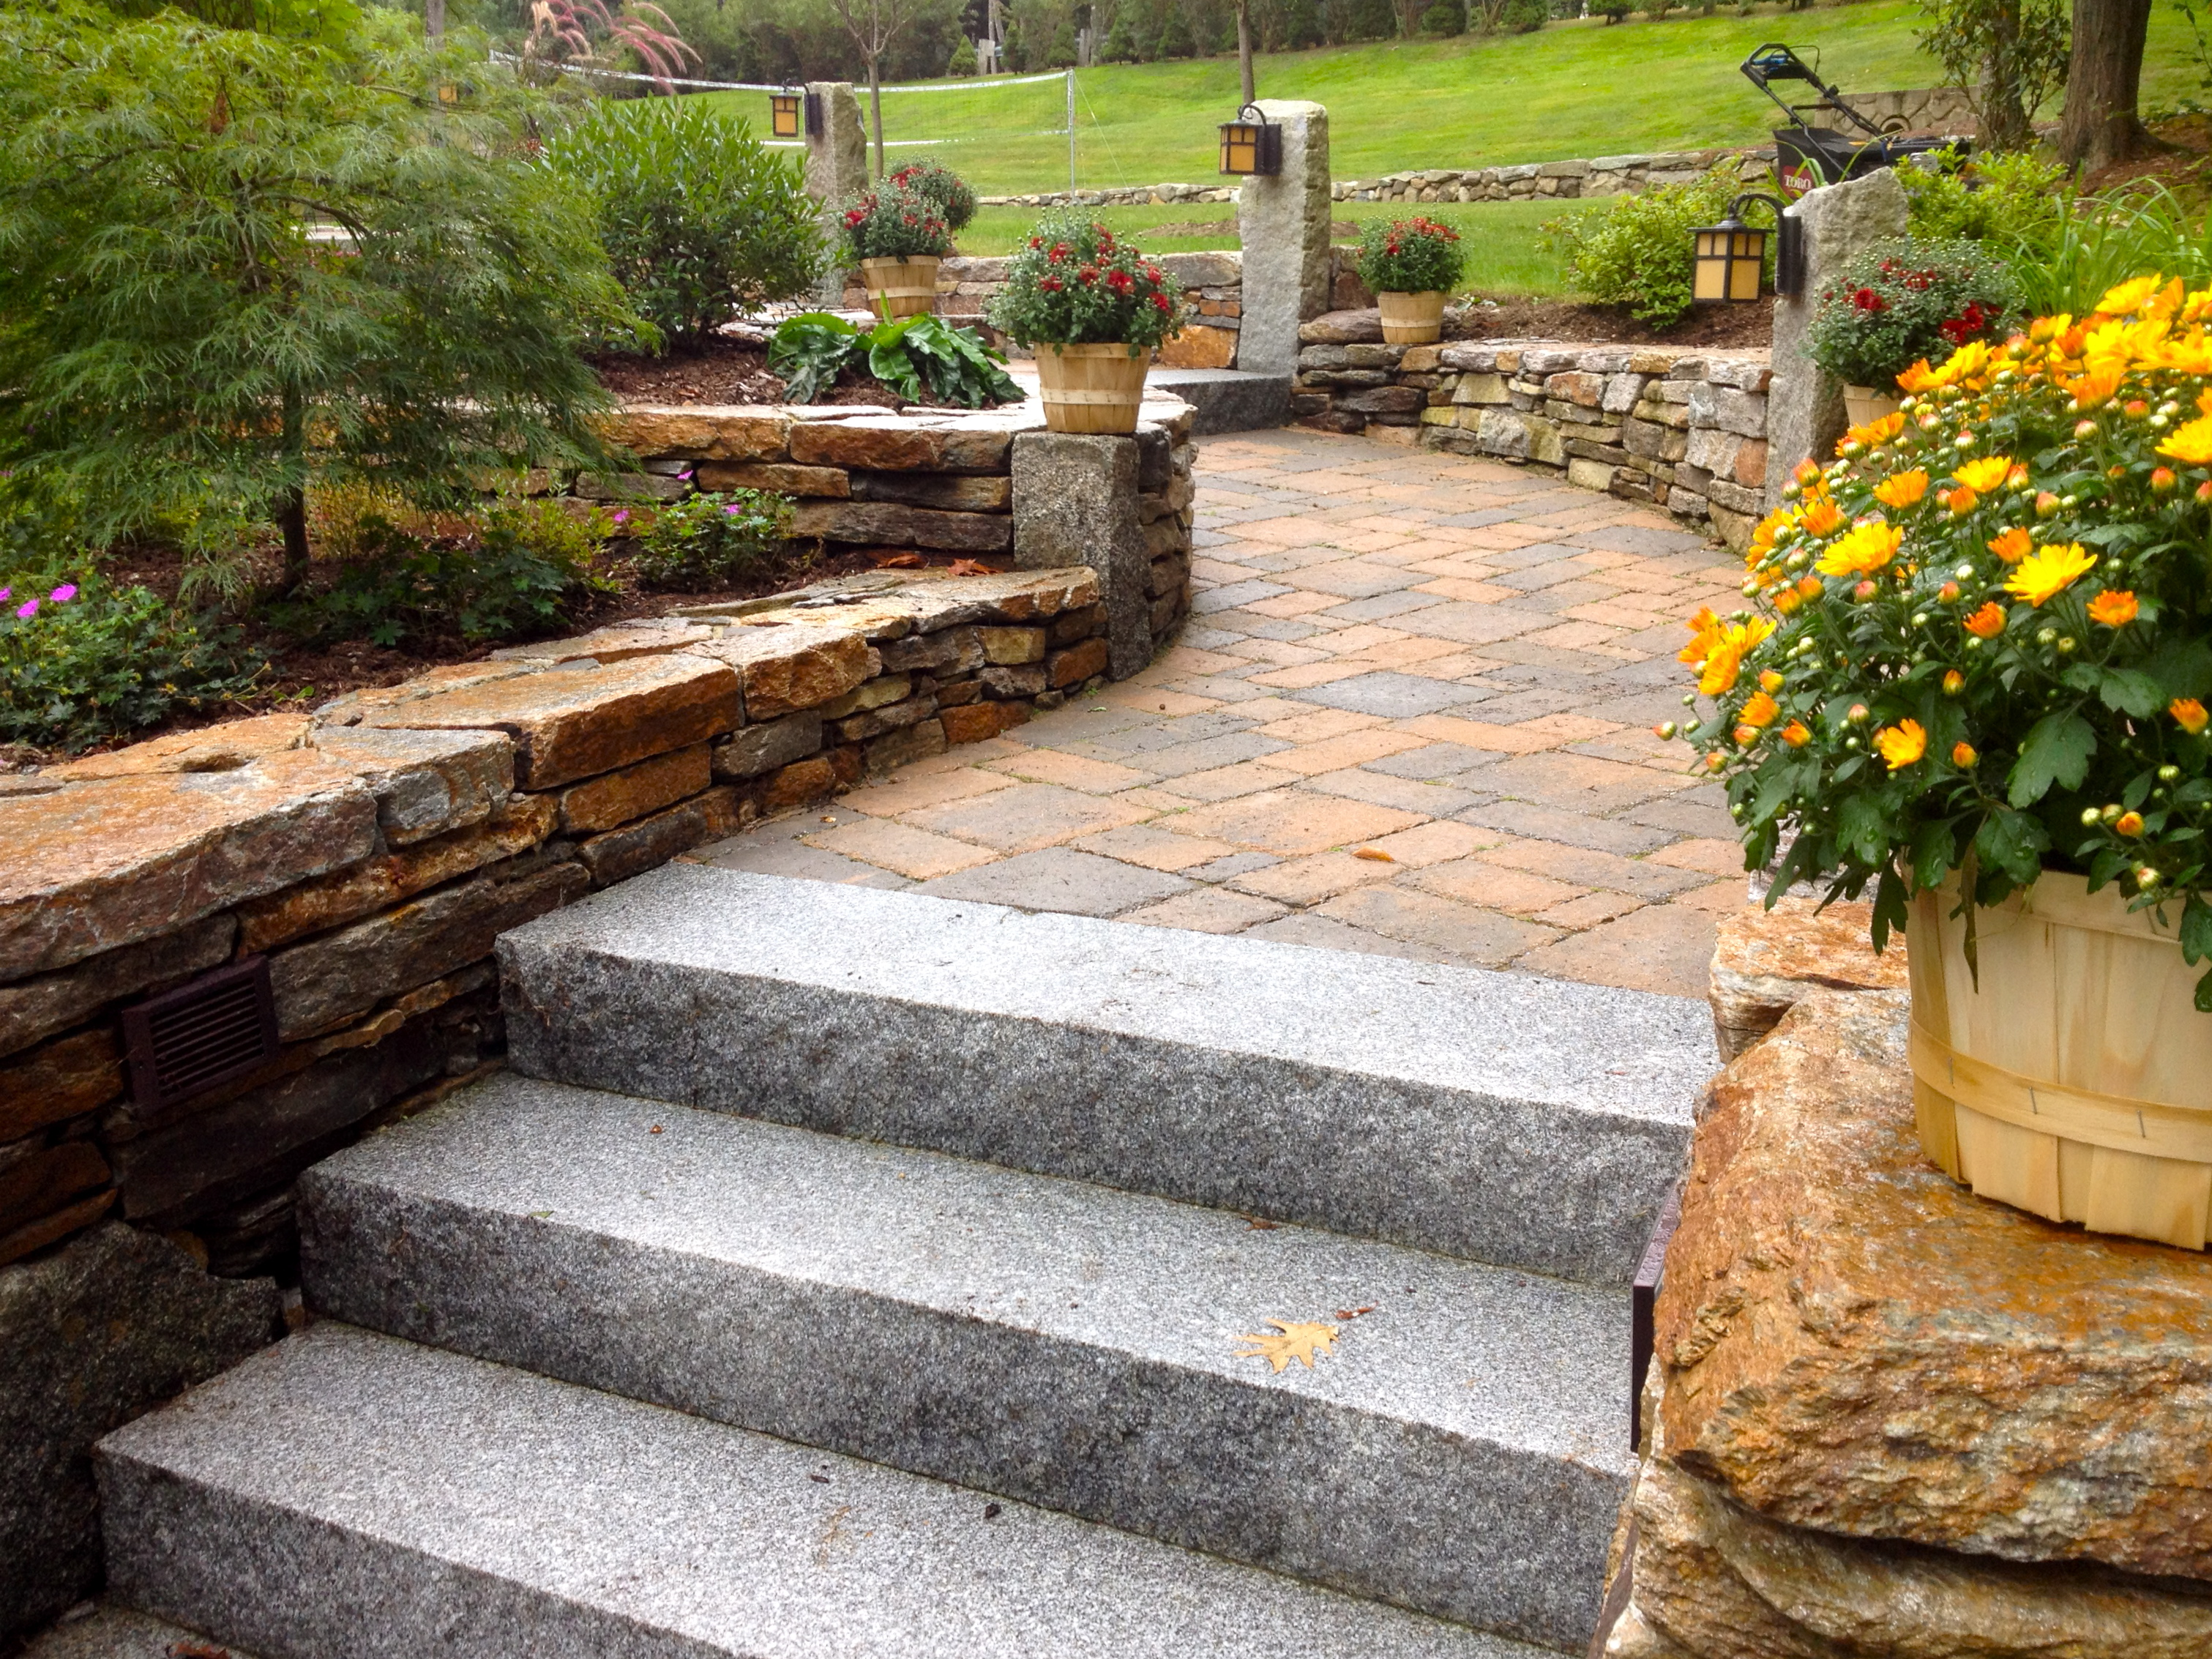 Stone Walls Bordering Front Walkway